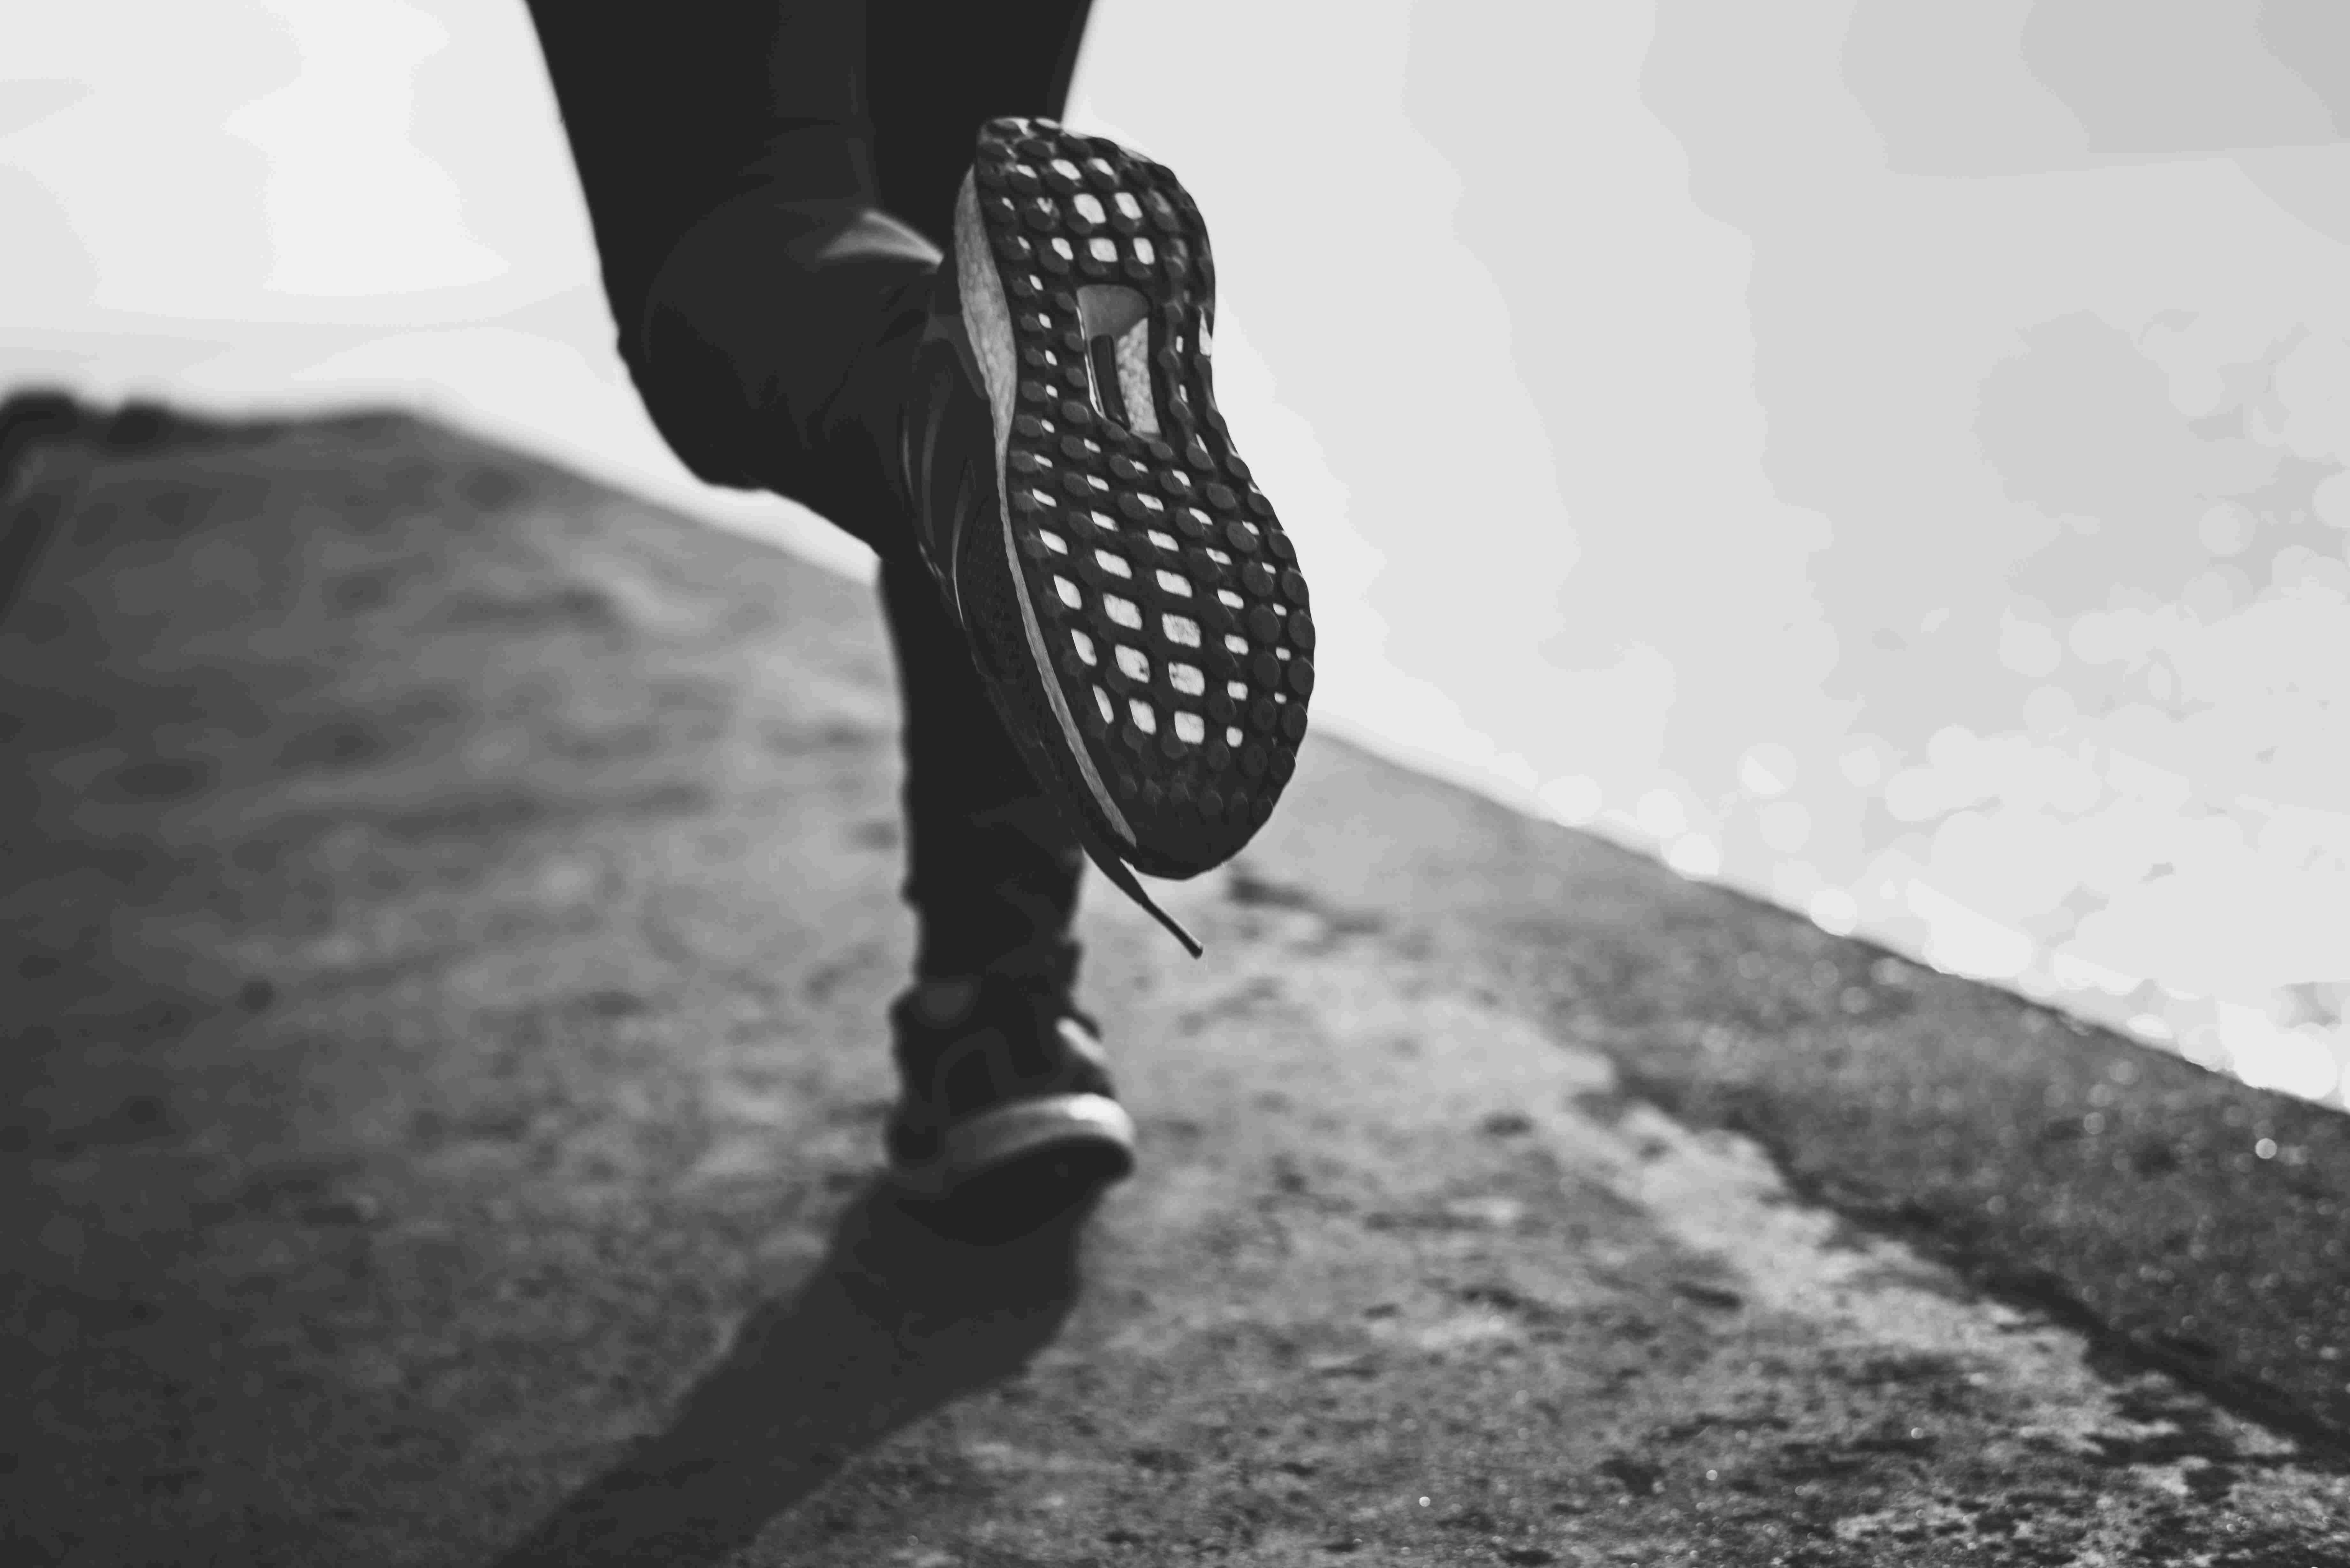 <a href='https://www.freepik.com/free-photo/closeup-of-shoes-while-running_2790793.htm'>Designed by Rawpixel.com</a>